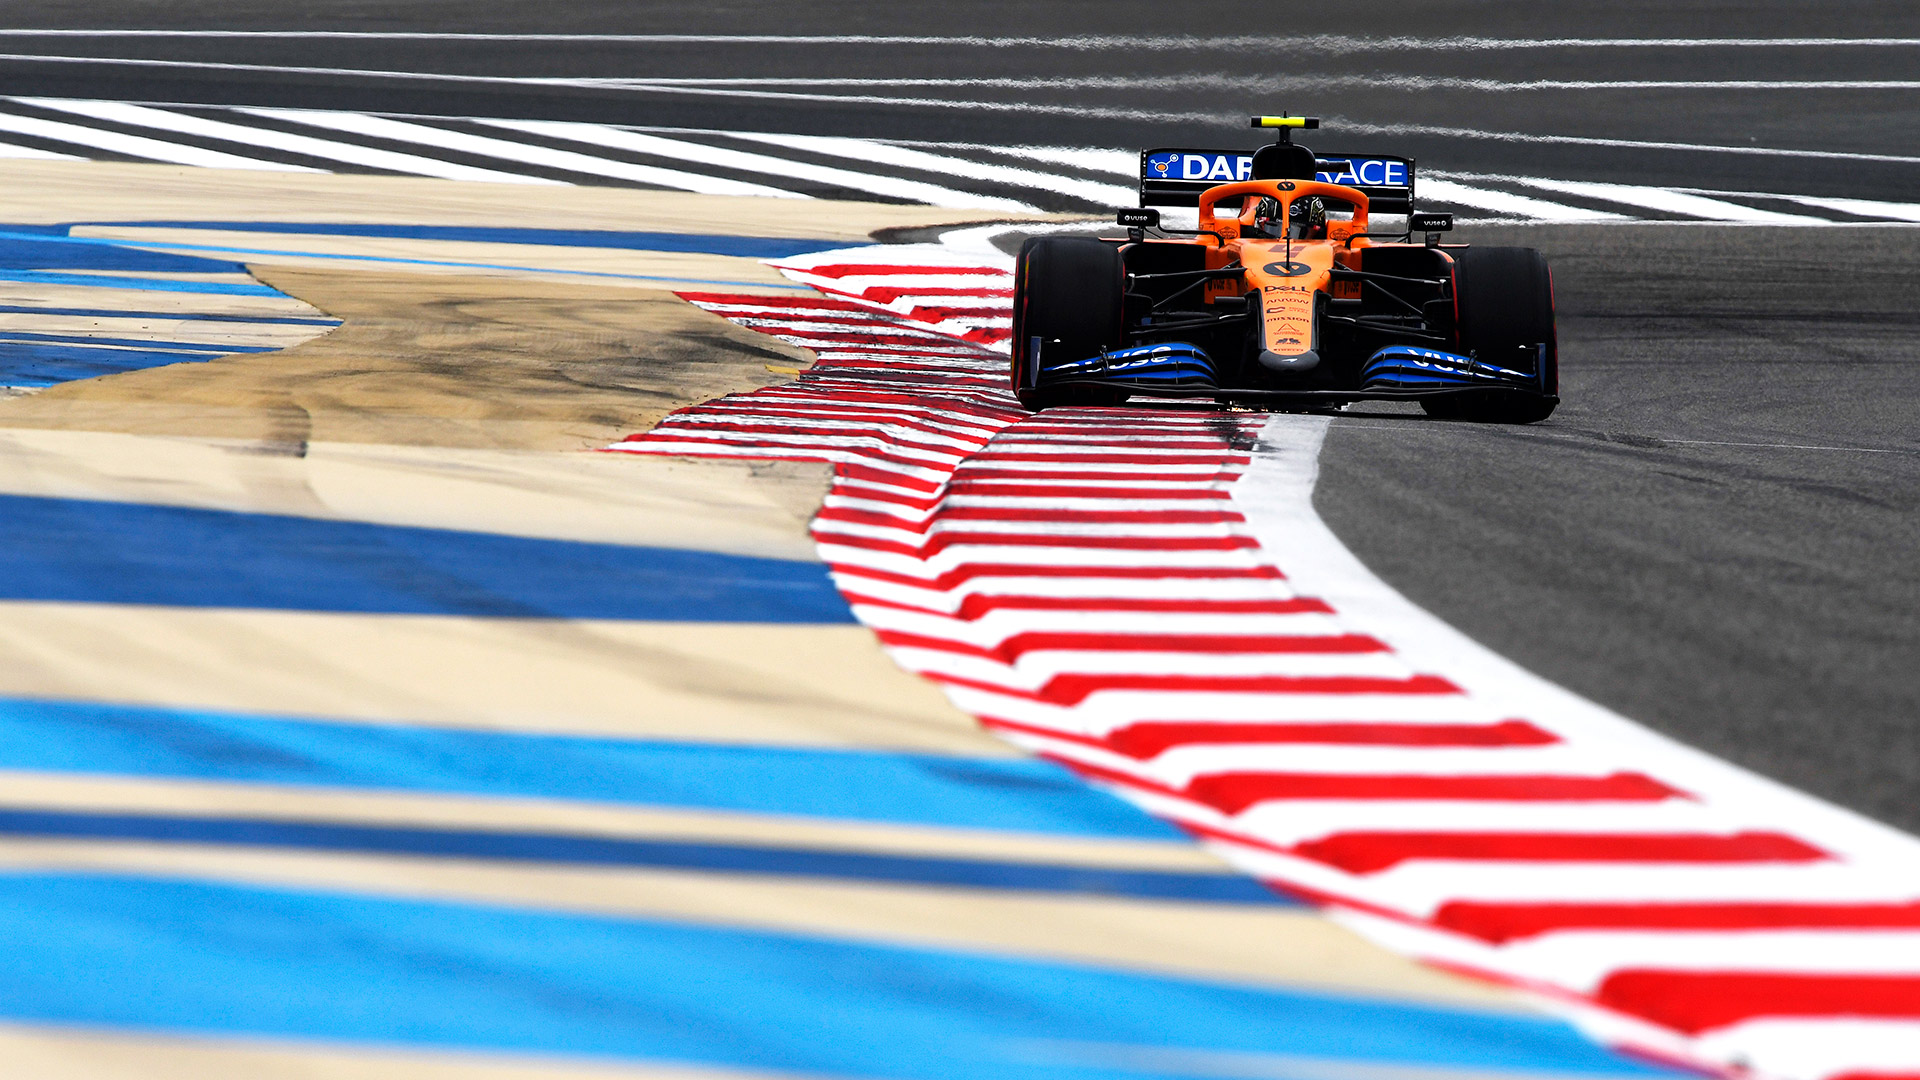 F1 Pre Season Testing 2021 10 Things To Watch For As Bahrain Hosts The First Test Of The Year Formula 1